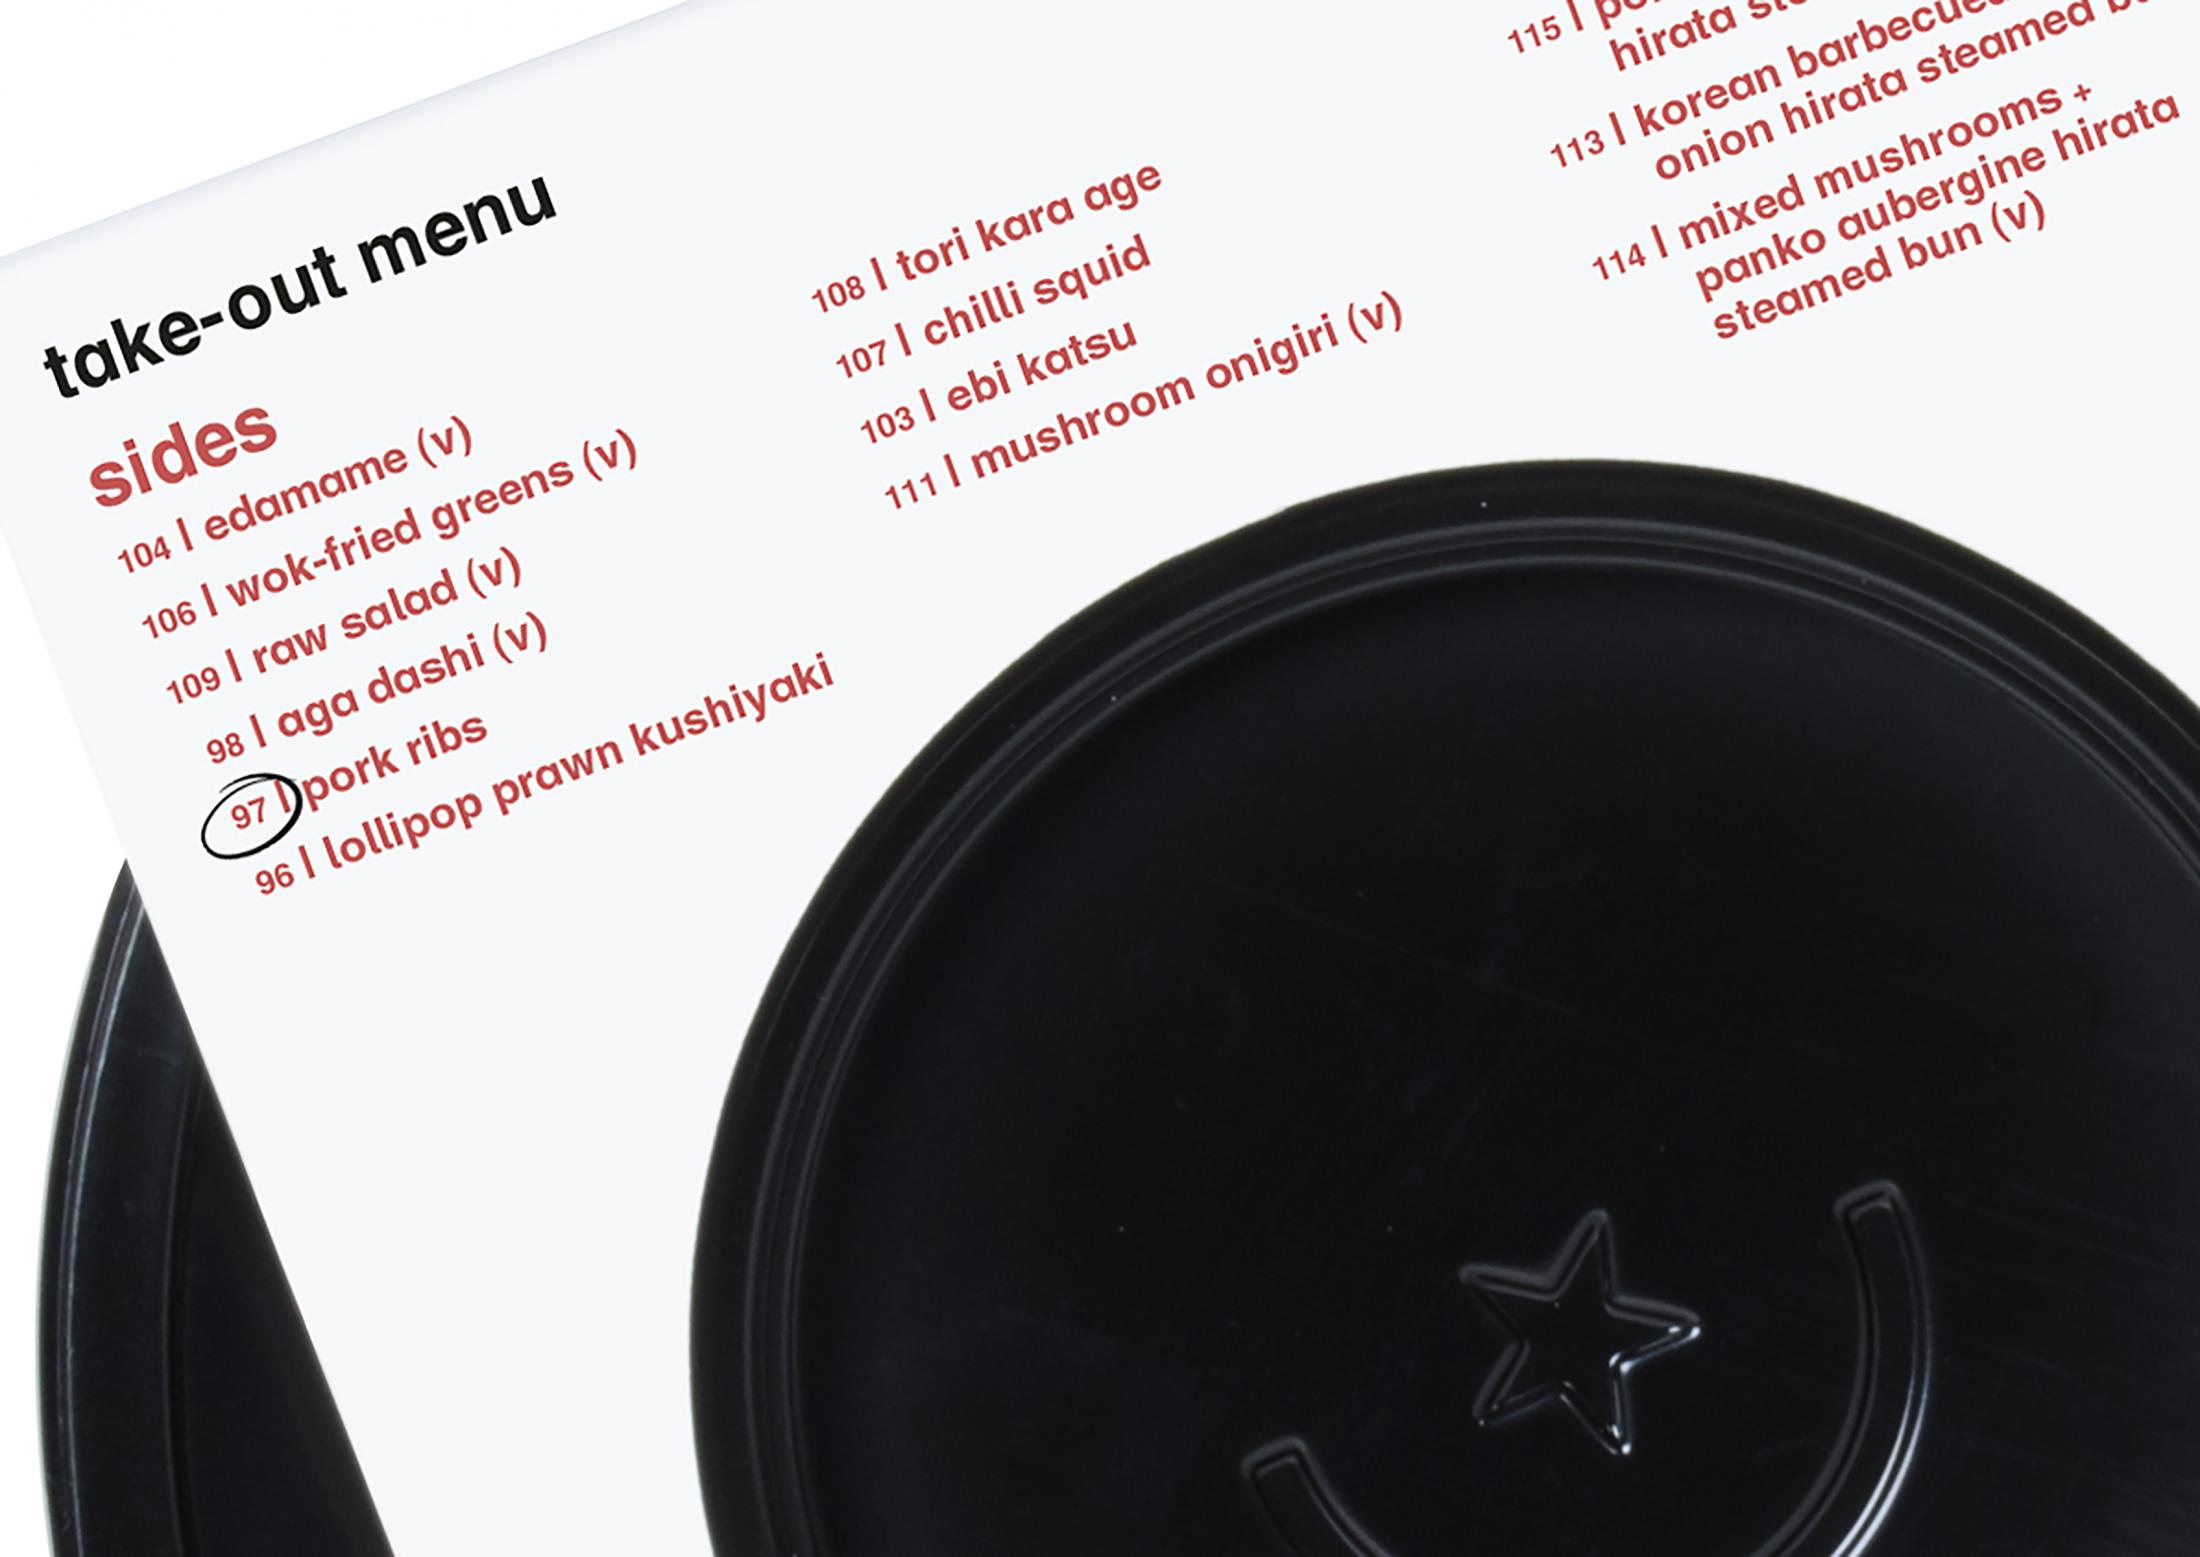 Image Media for Wagamama Takeout Experience